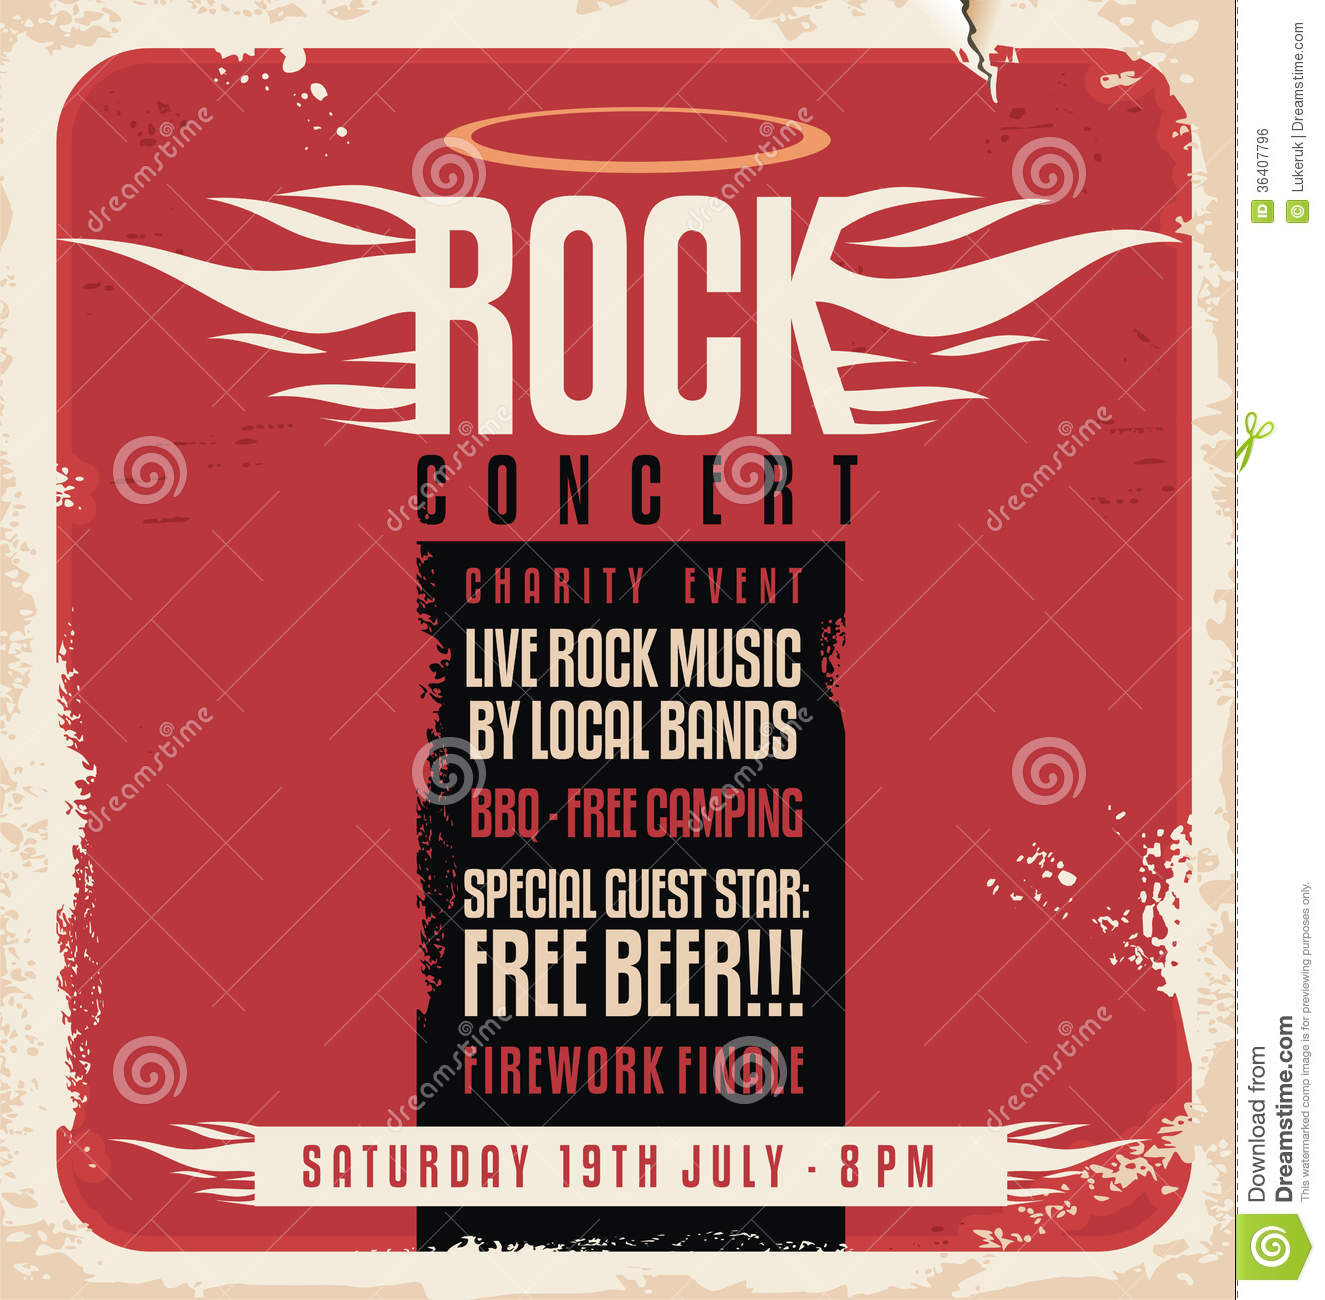 Rock Concert Retro Poster Design Stock Vector - Illustration of ...